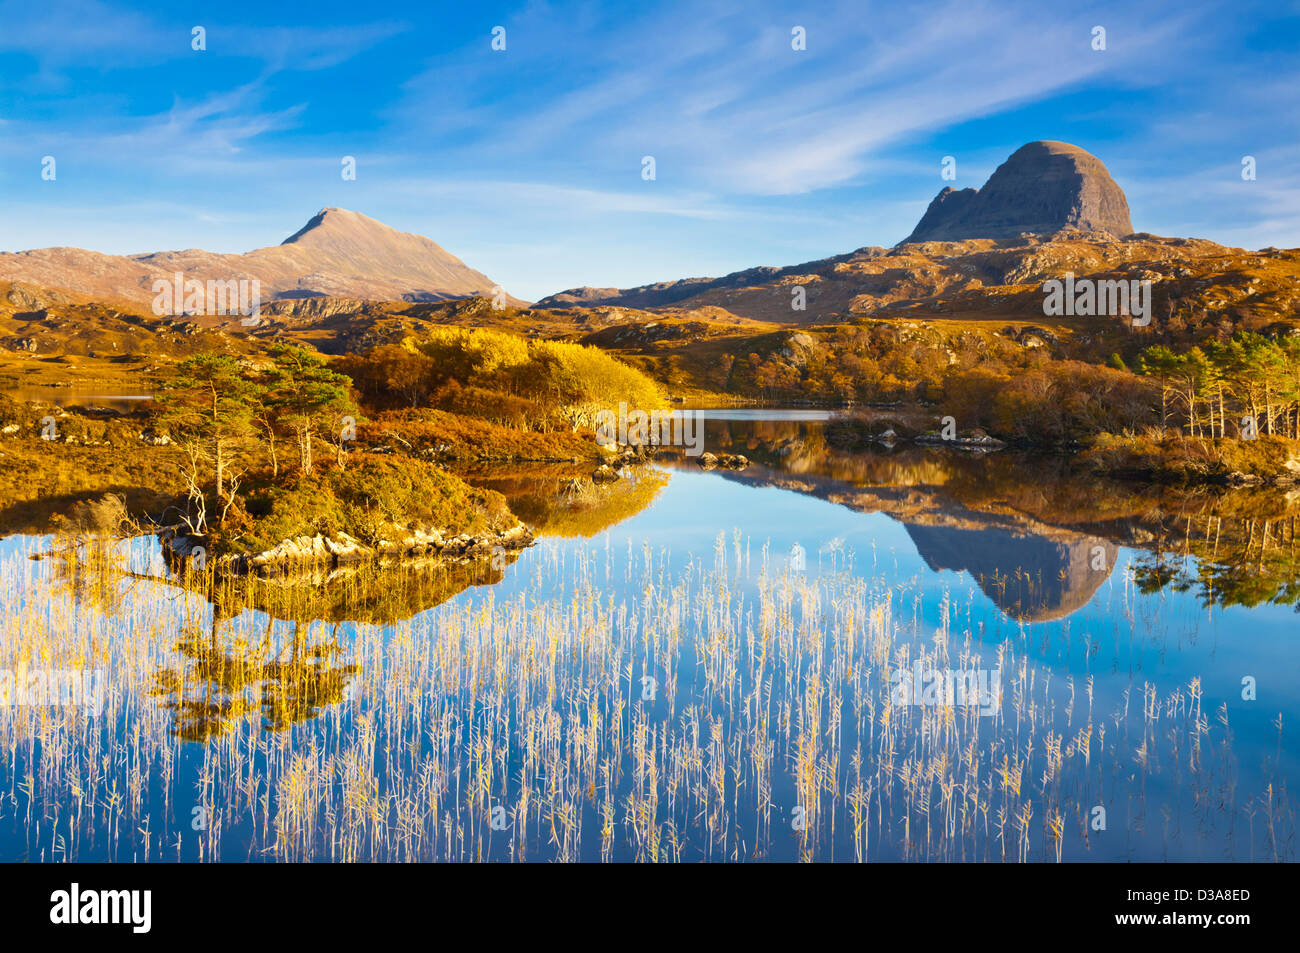 Two mountains of Suilven and Canisp from Loch Druim Suardalain, Sutherland, North west Scotland, UK, GB, EU, Europe Stock Photo